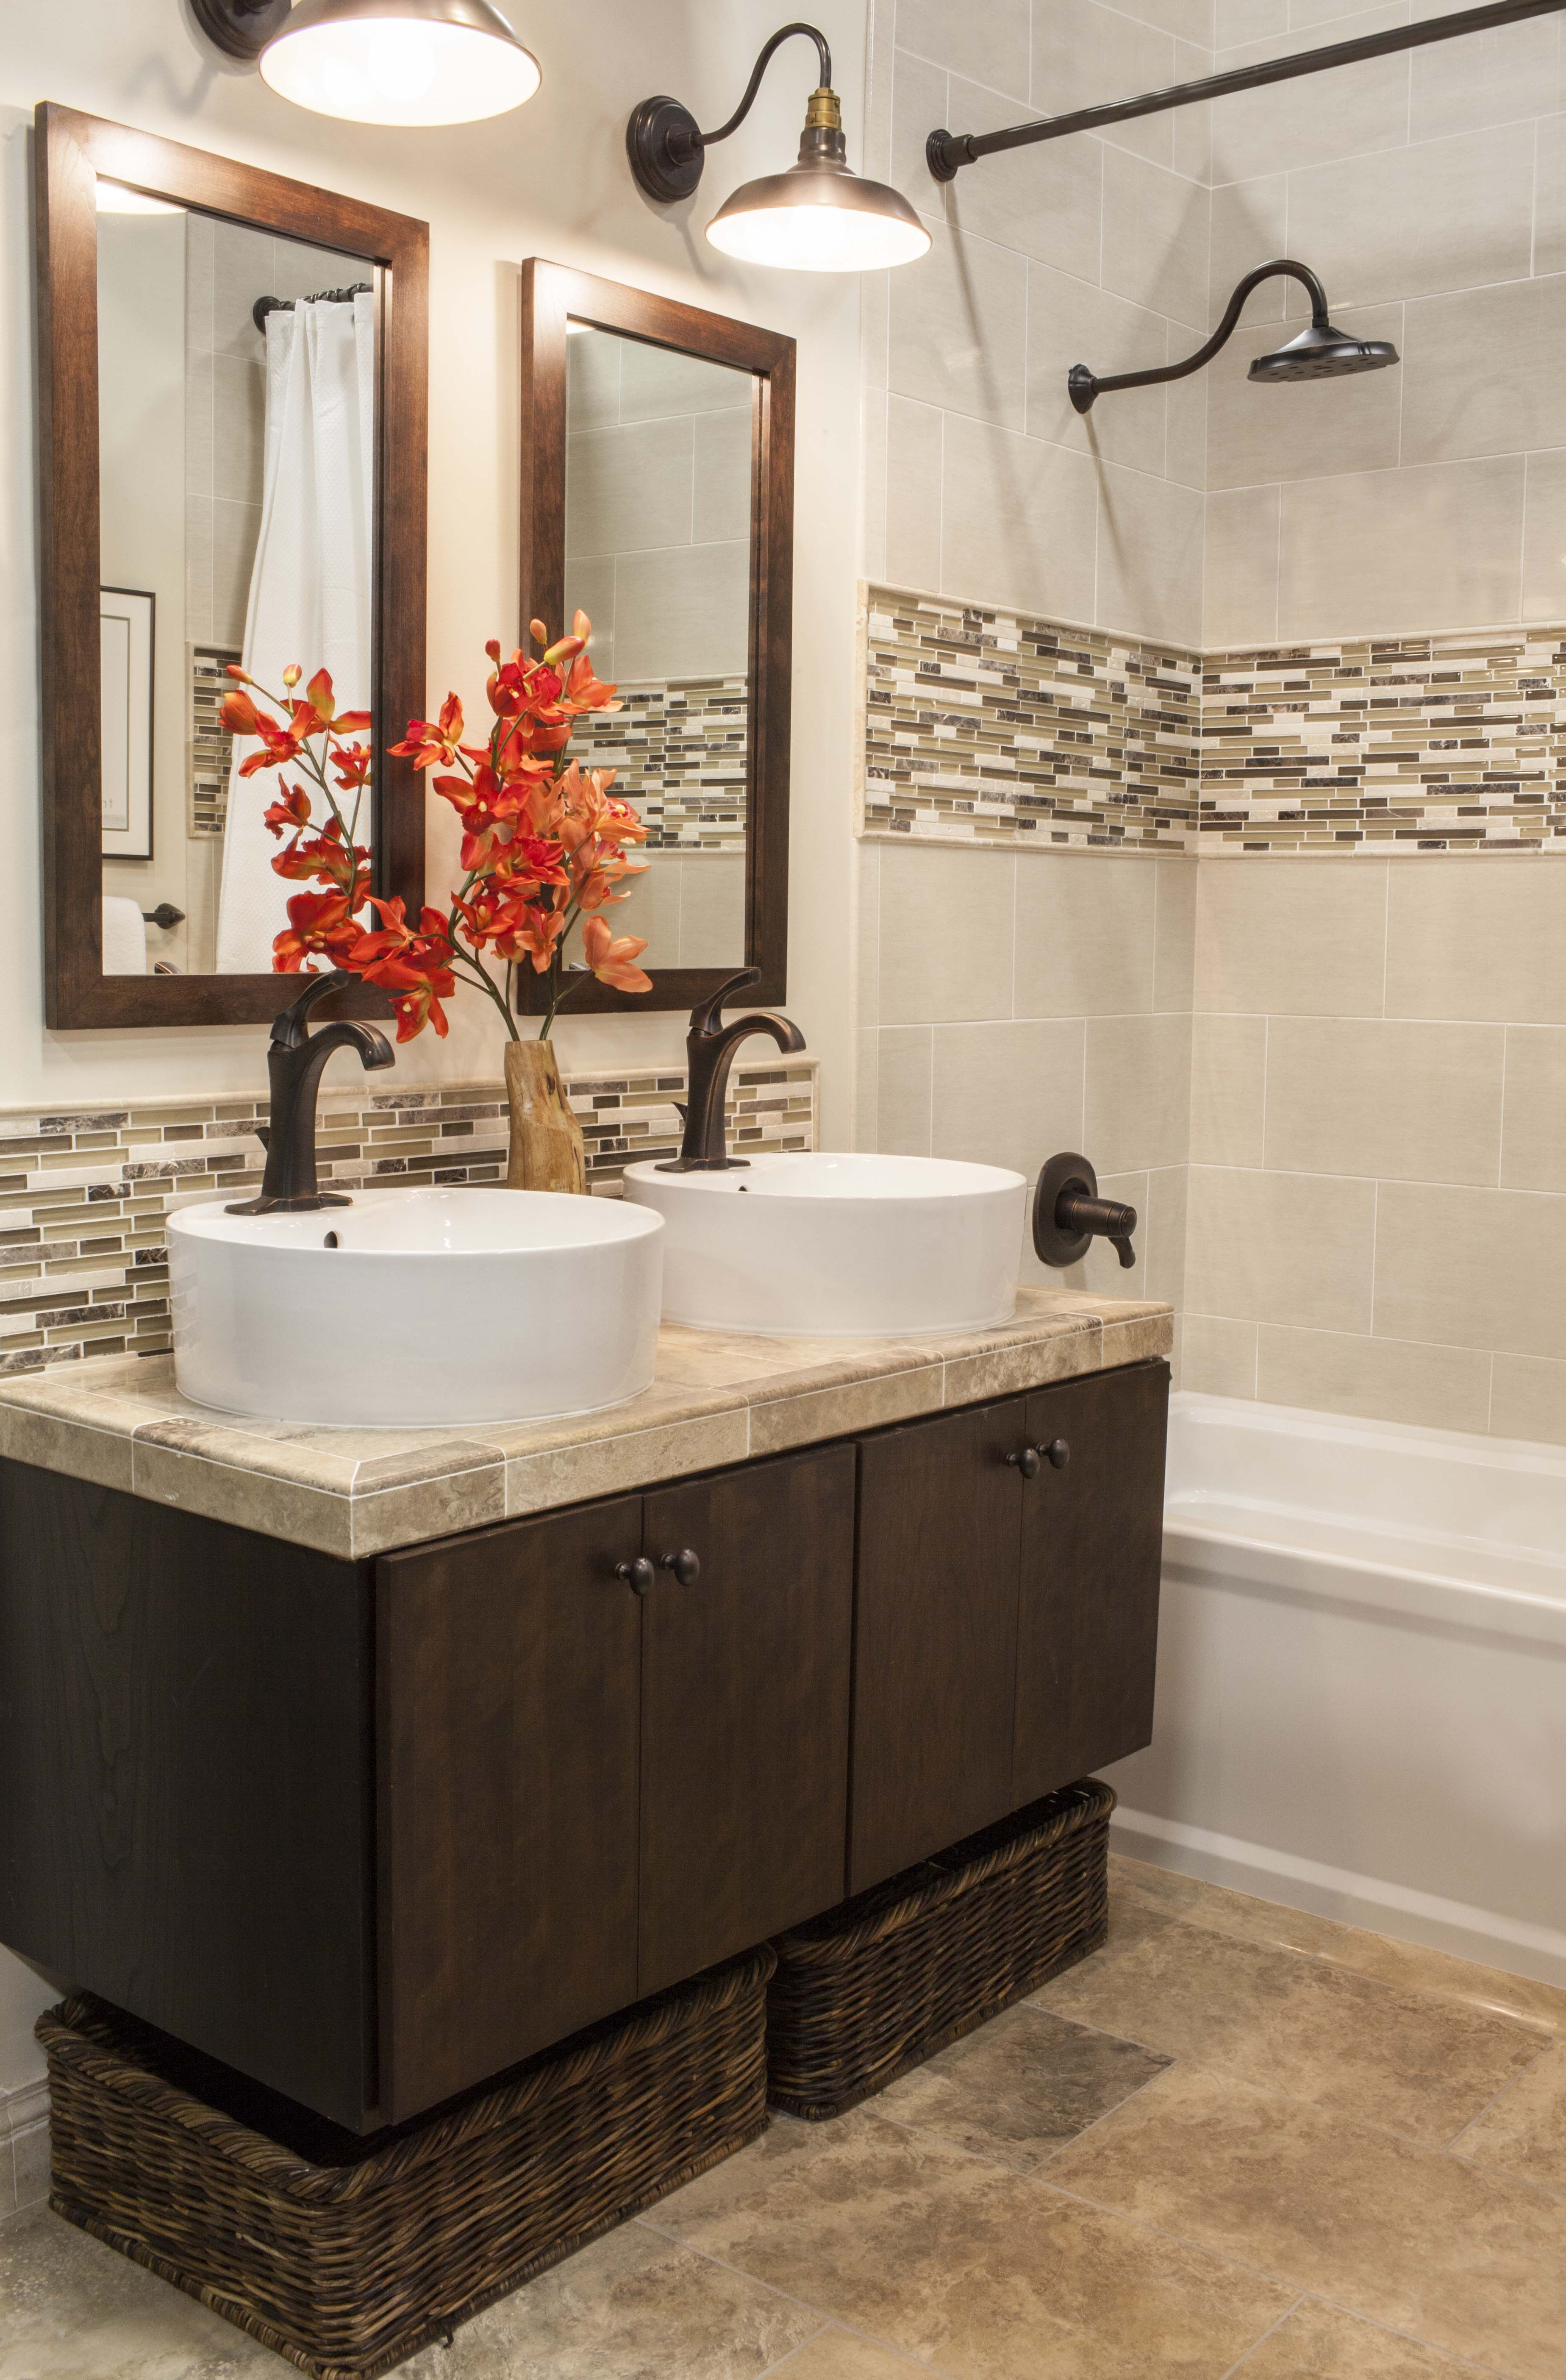 30 Inspiring Accent Wall Ideas To Change An Area | Home Design ... on candice olsen accent wall in bathroom, wallpaper accent wall in bathroom, accent tiles for bathroom, tile bathroom accent ideas, stencil accent wall in bathroom, pebble accent wall small bathroom, wood accent wall in bathroom, painting accent wall in bathroom, white subway tile bathroom,